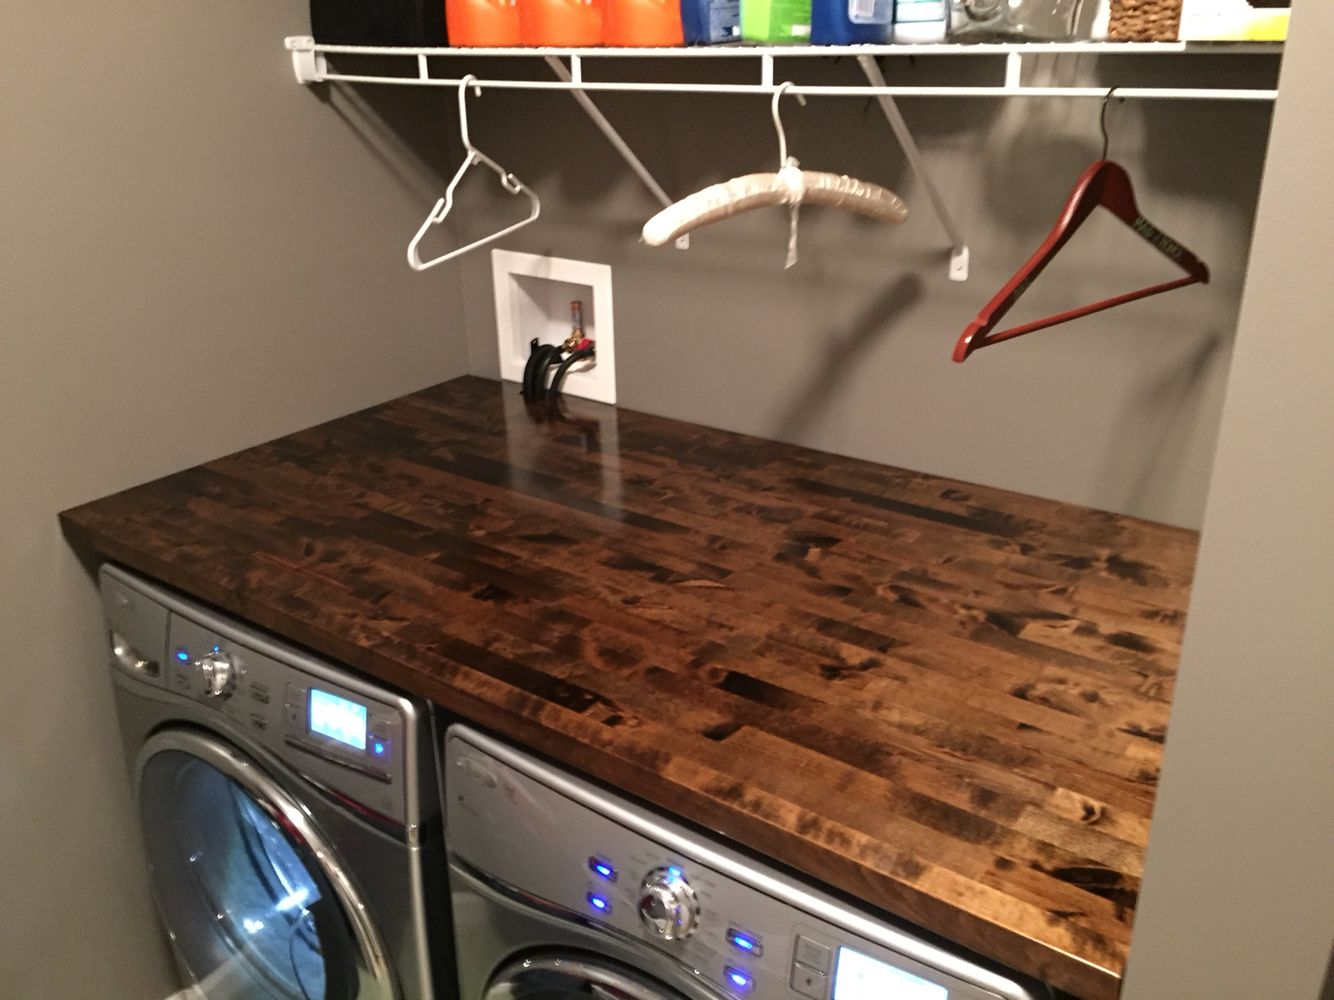 Countertop for front load washer and dryer - Just Finished Installing Our New Whirlpool Front Load Washer And Dryer With A Beautiful Hand Stained